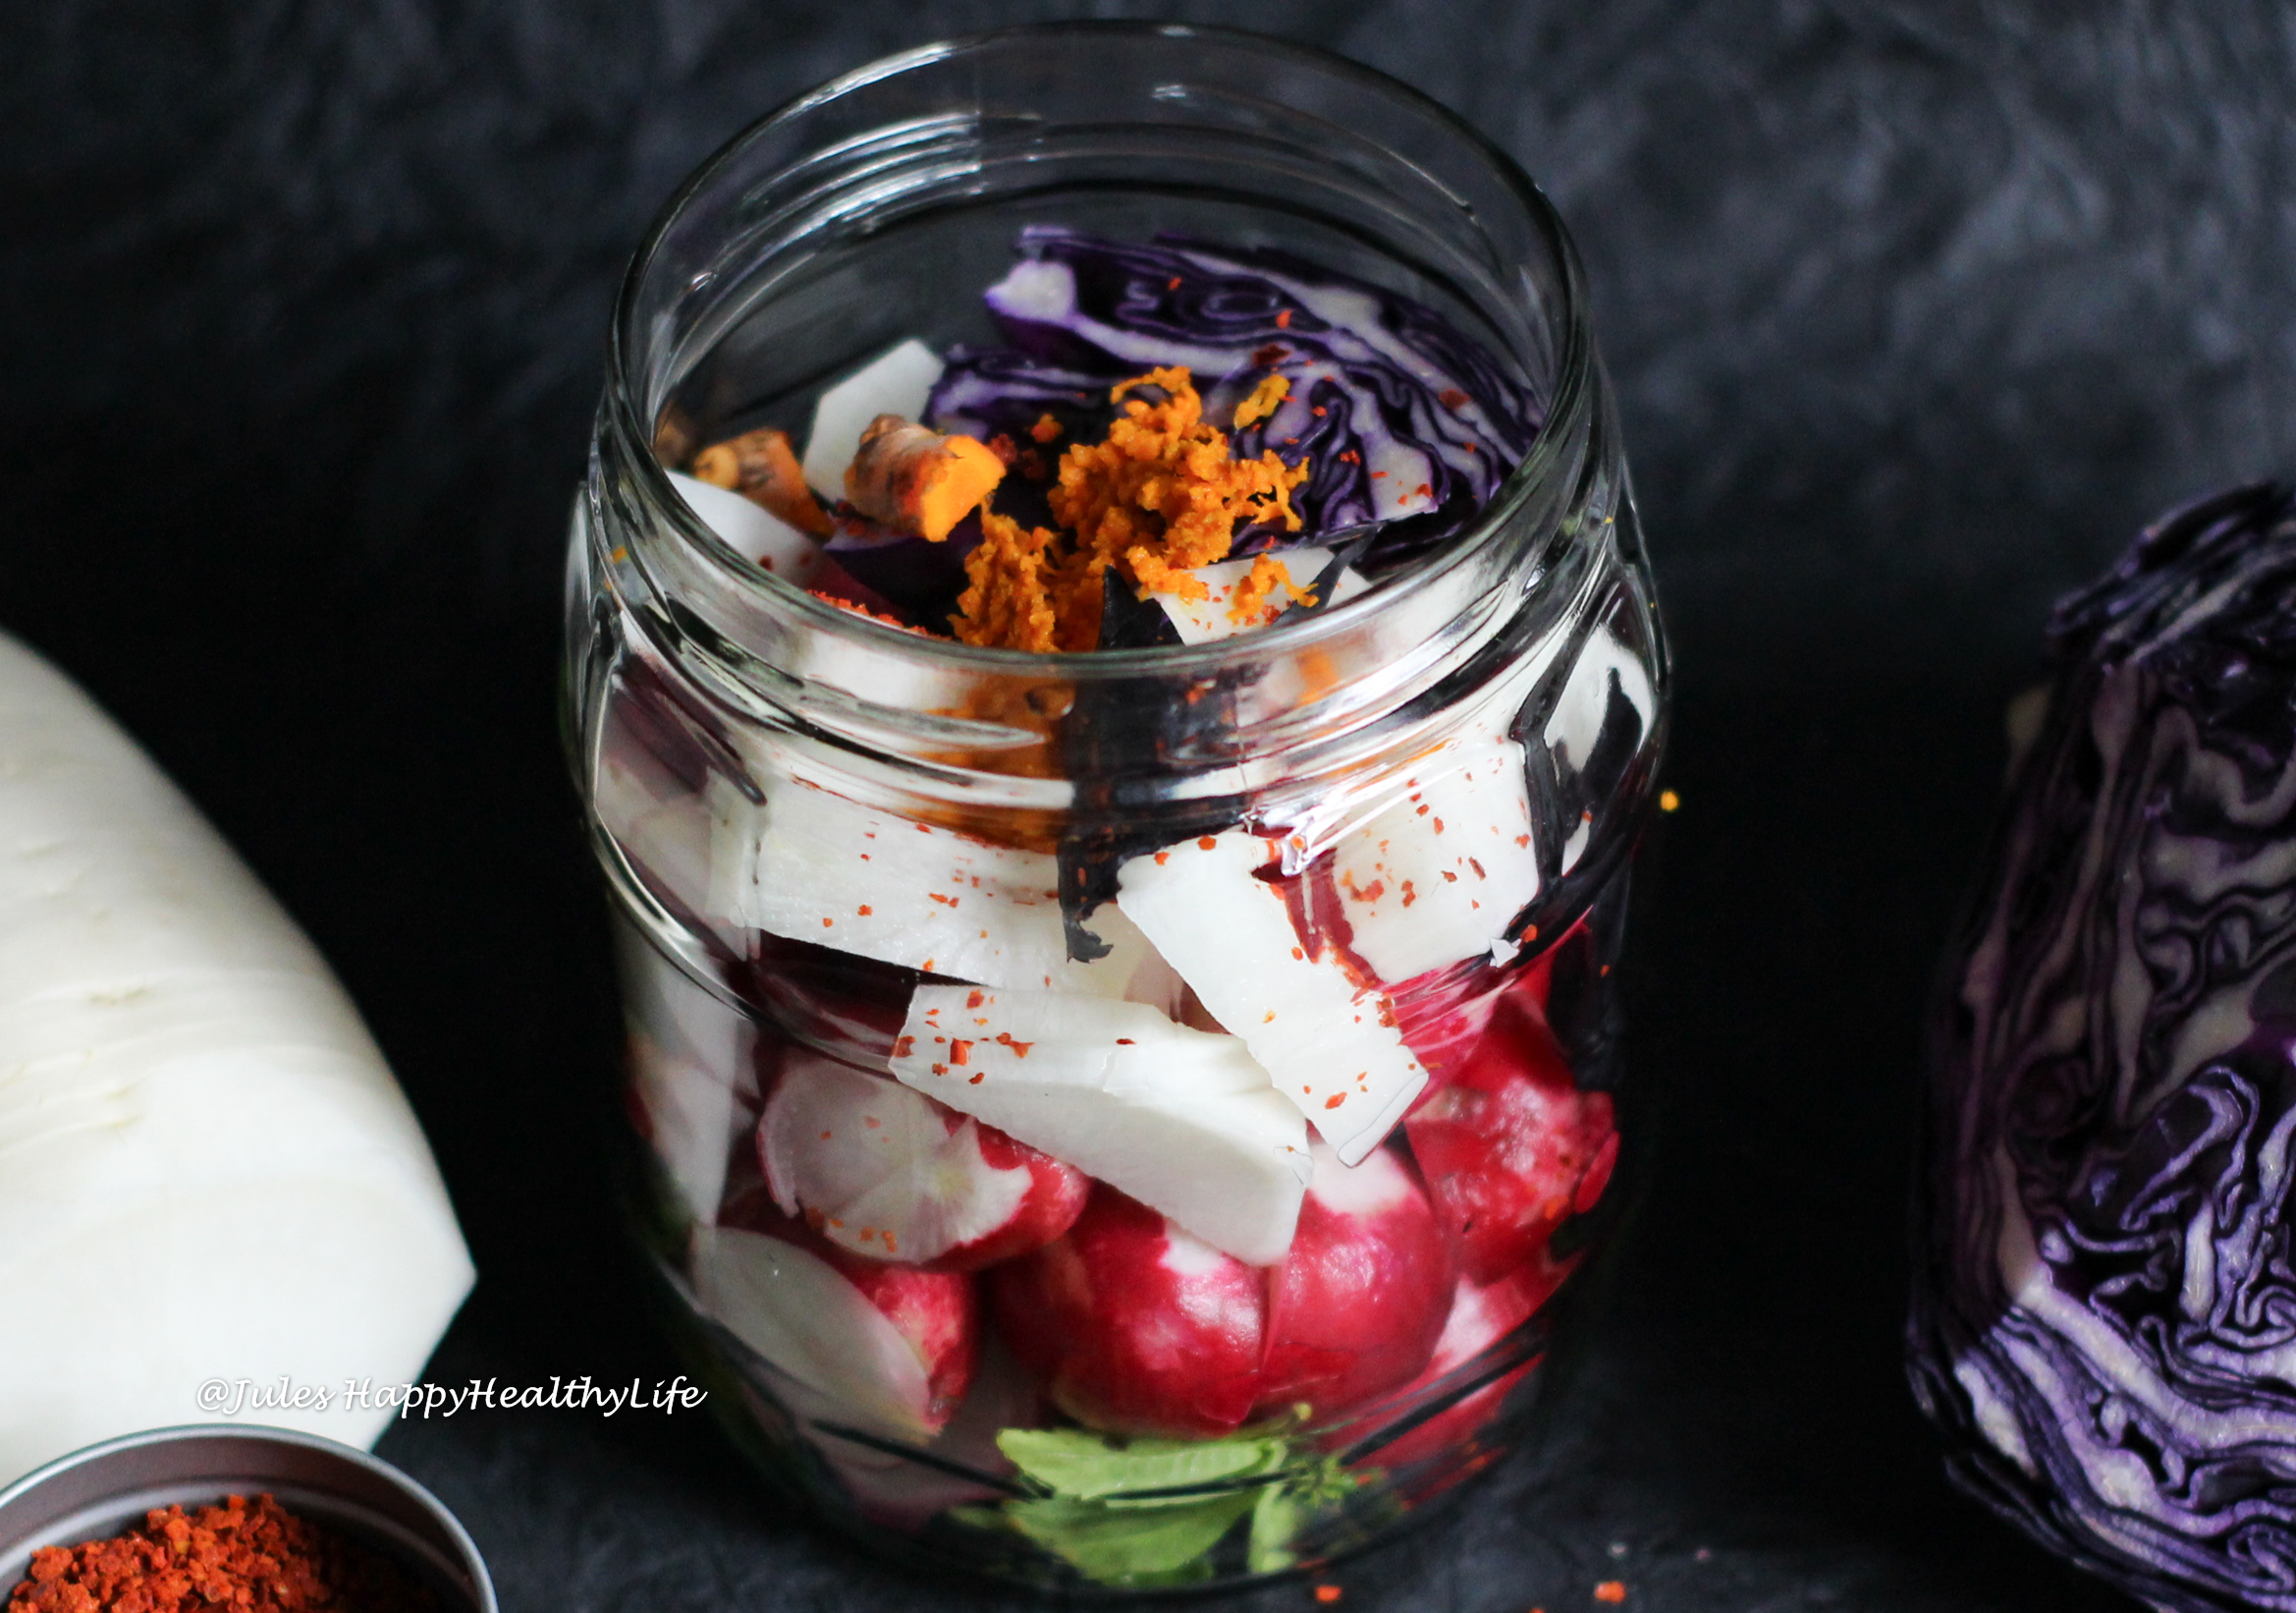 You can be extremely creative when fermenting your vegetables with herbs and spices